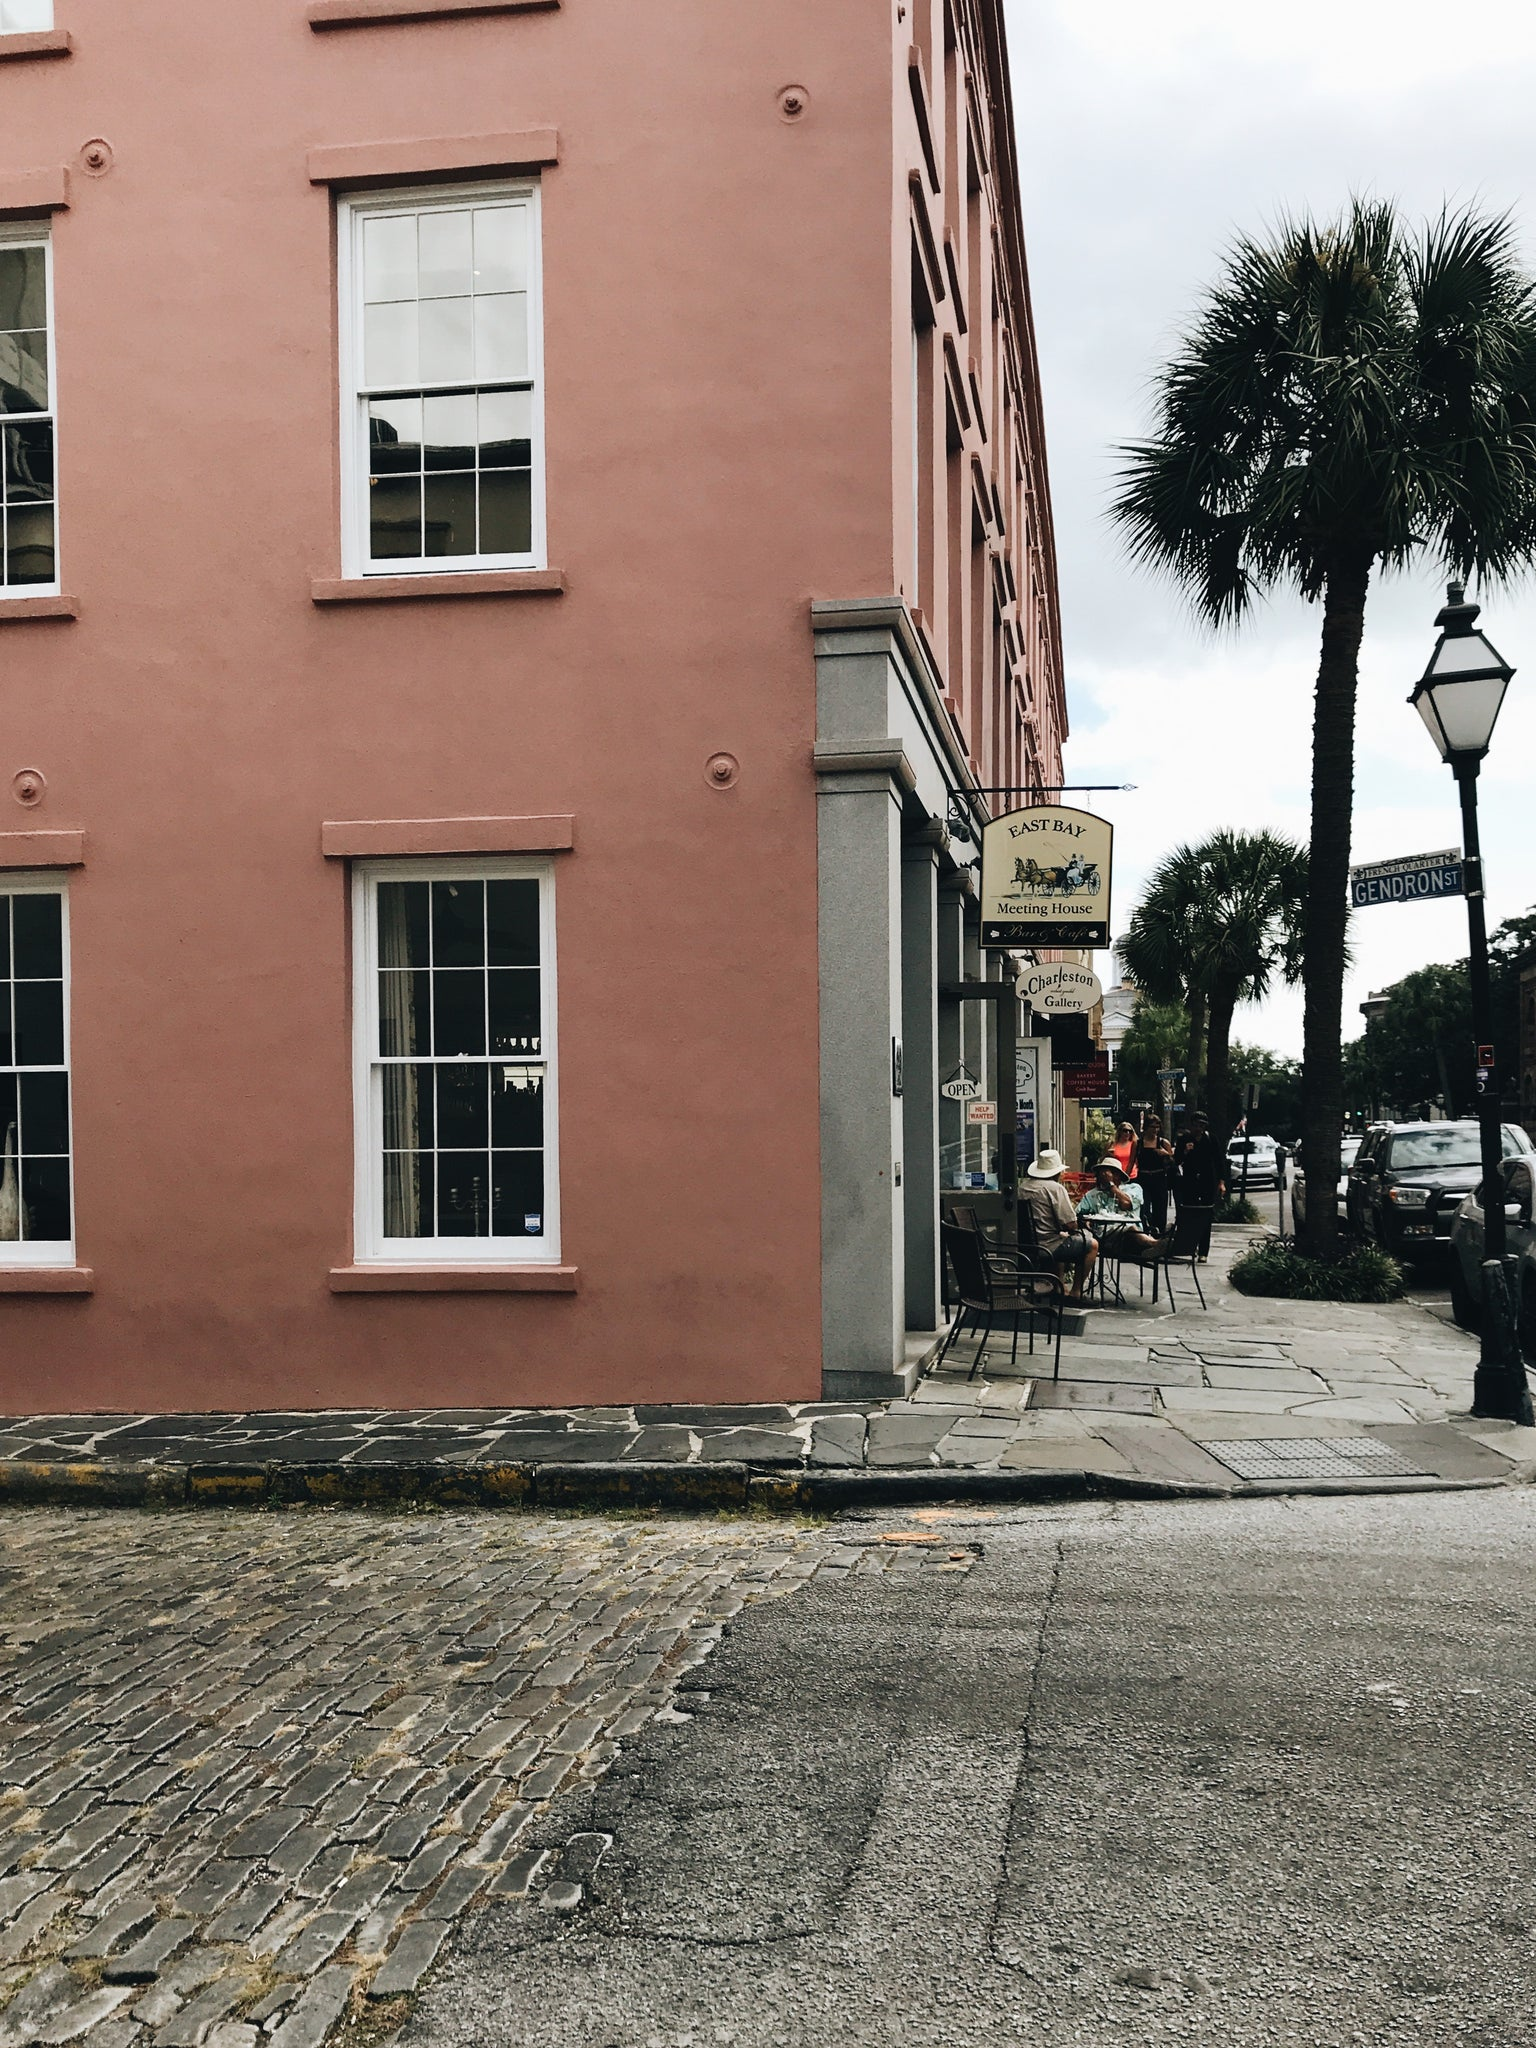 MONTGOMERY COLLECTION | CHARLESTON, SOUTH CAROLINA